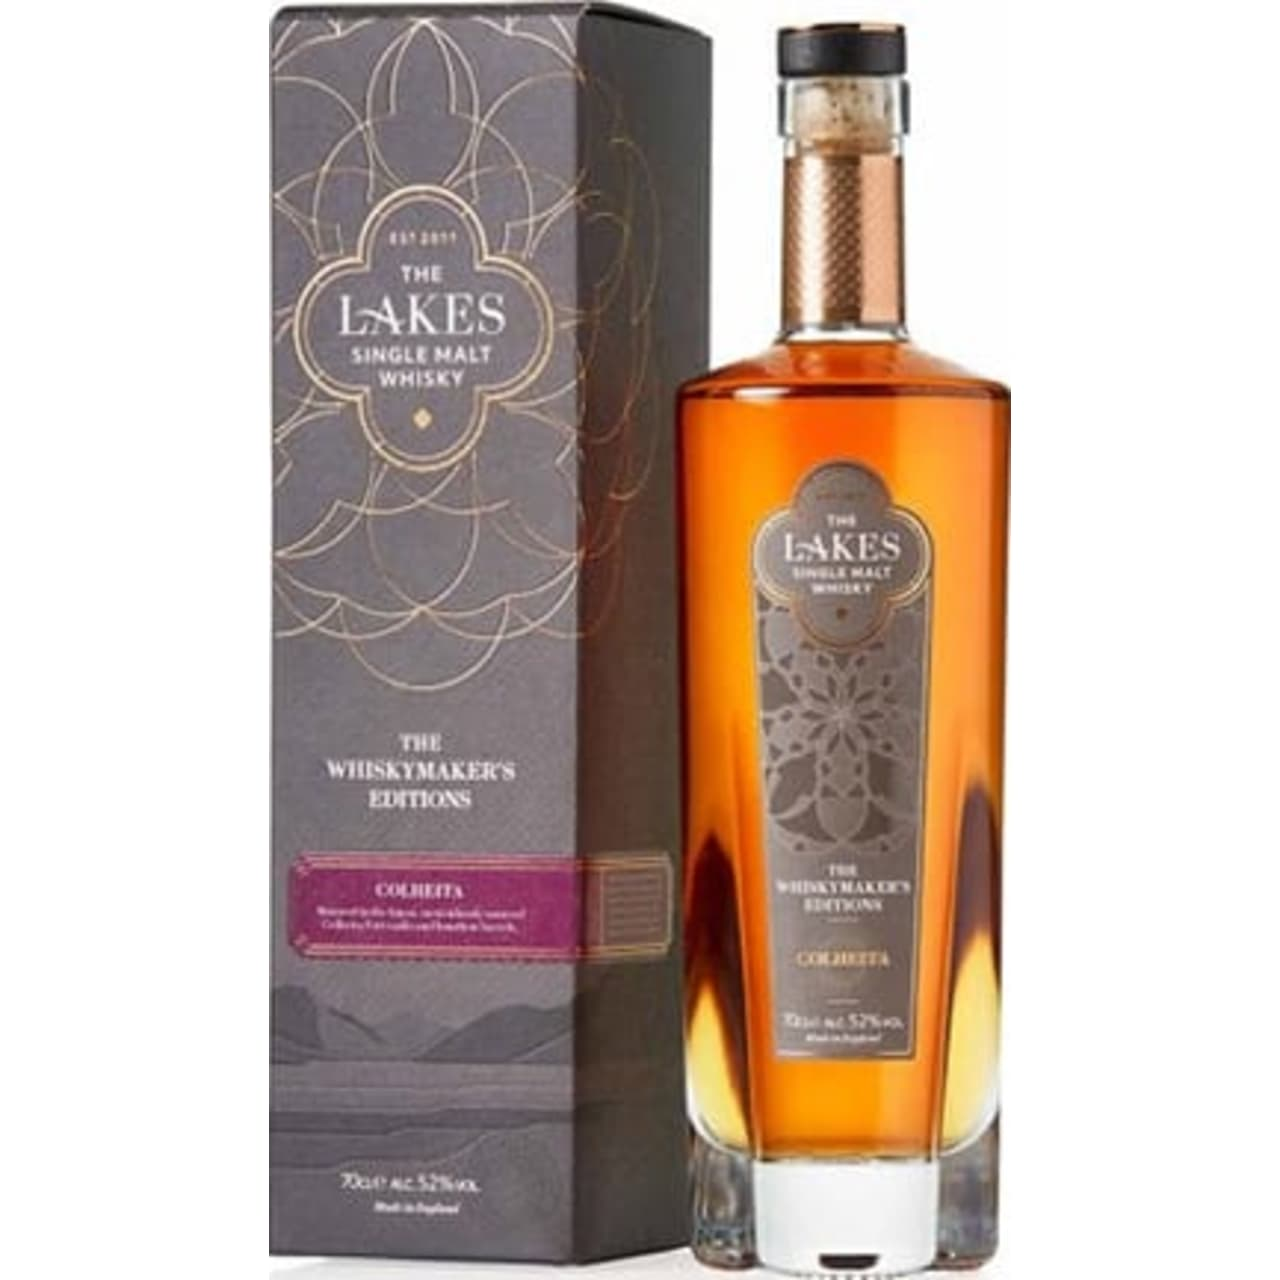 Product Image - The Lakes The Whiskymaker's Editions Colheita